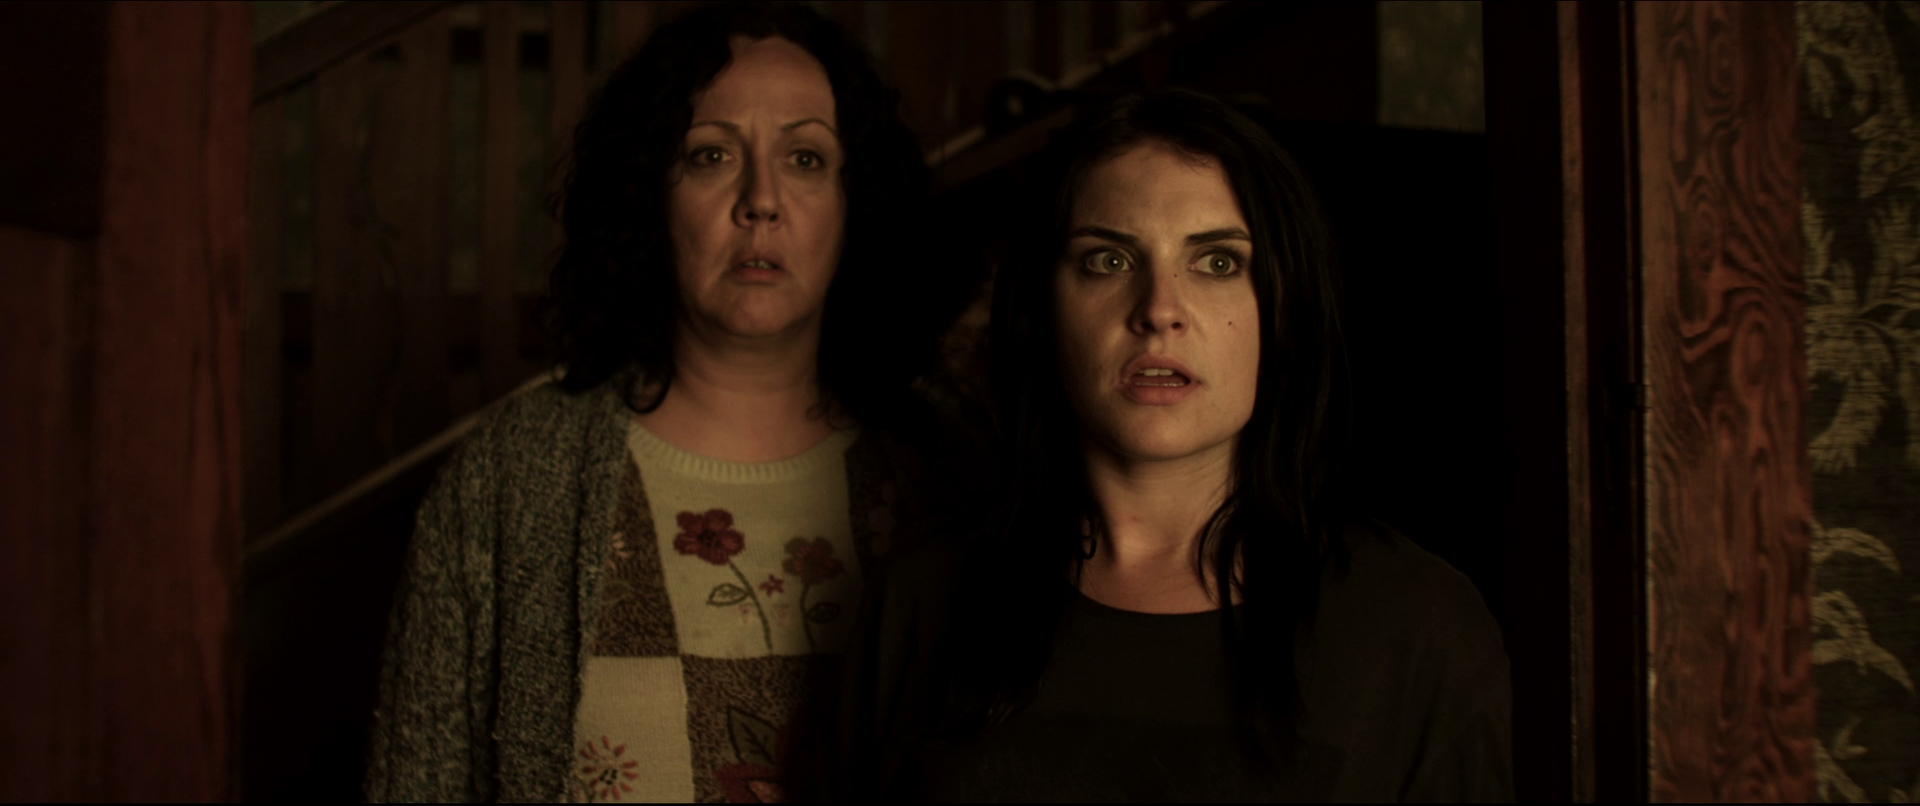 Review: Housebound & Aunty and the Star People